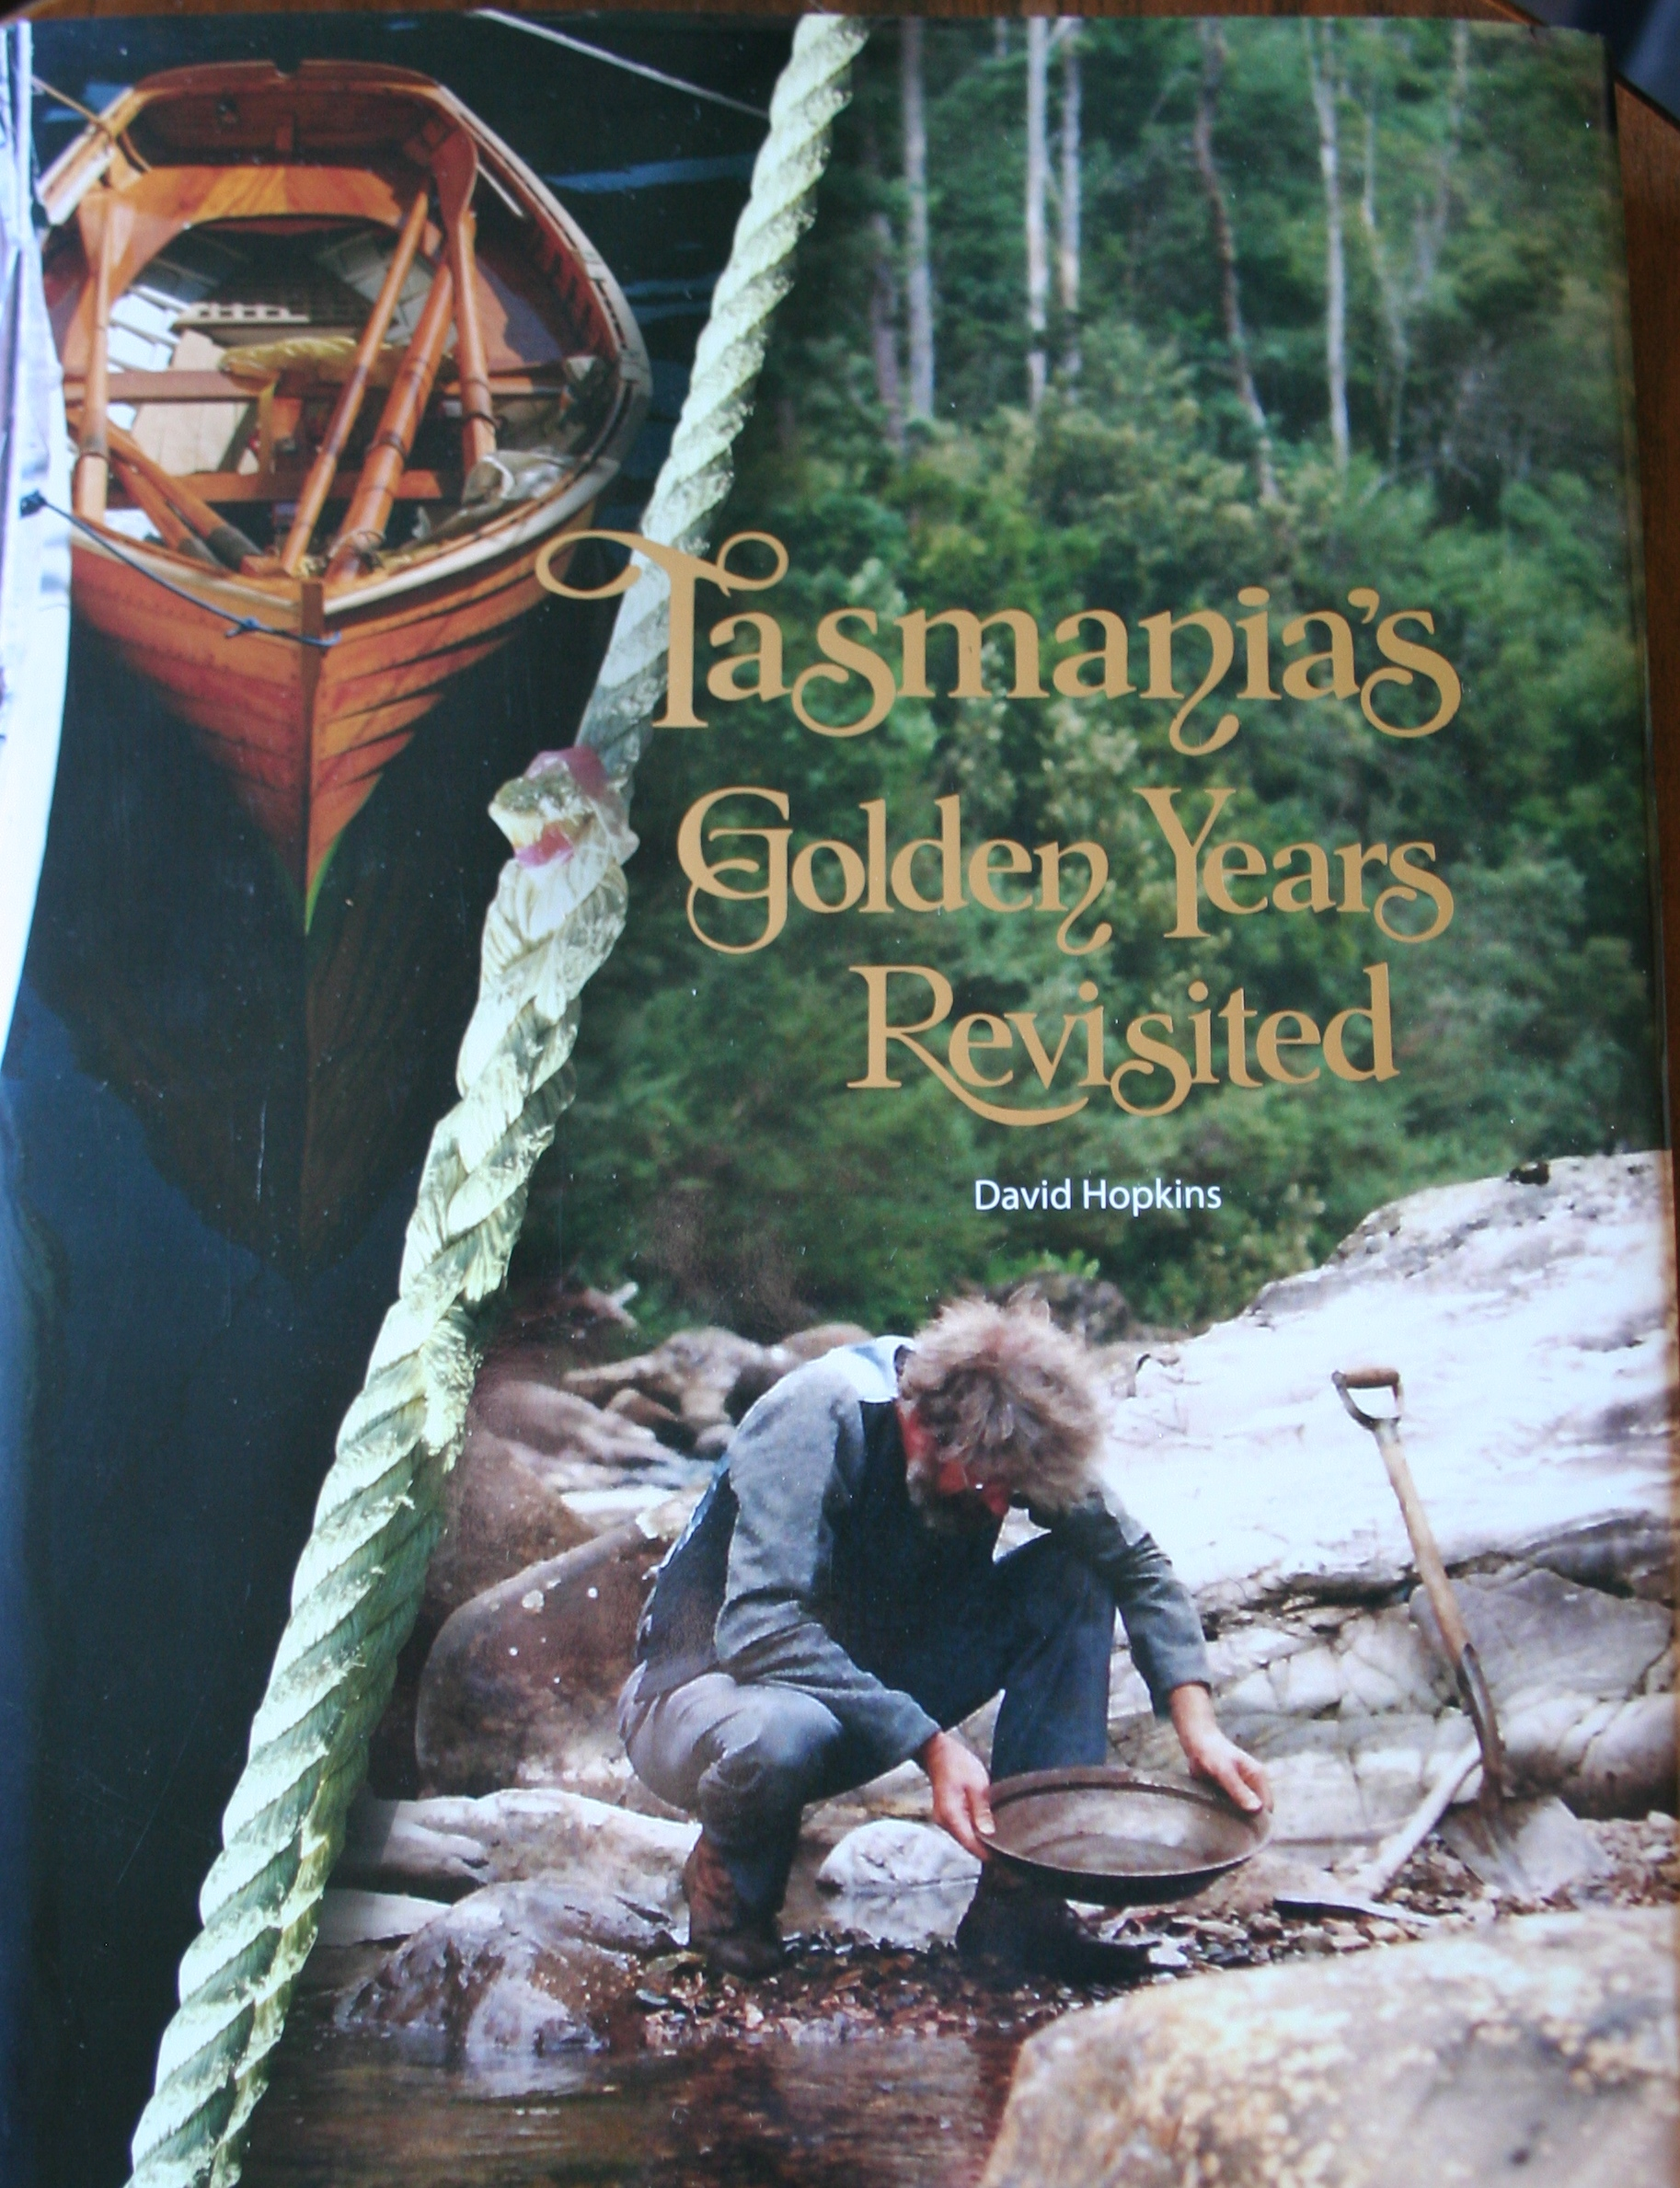 Tasmania's Golden Years Revisited